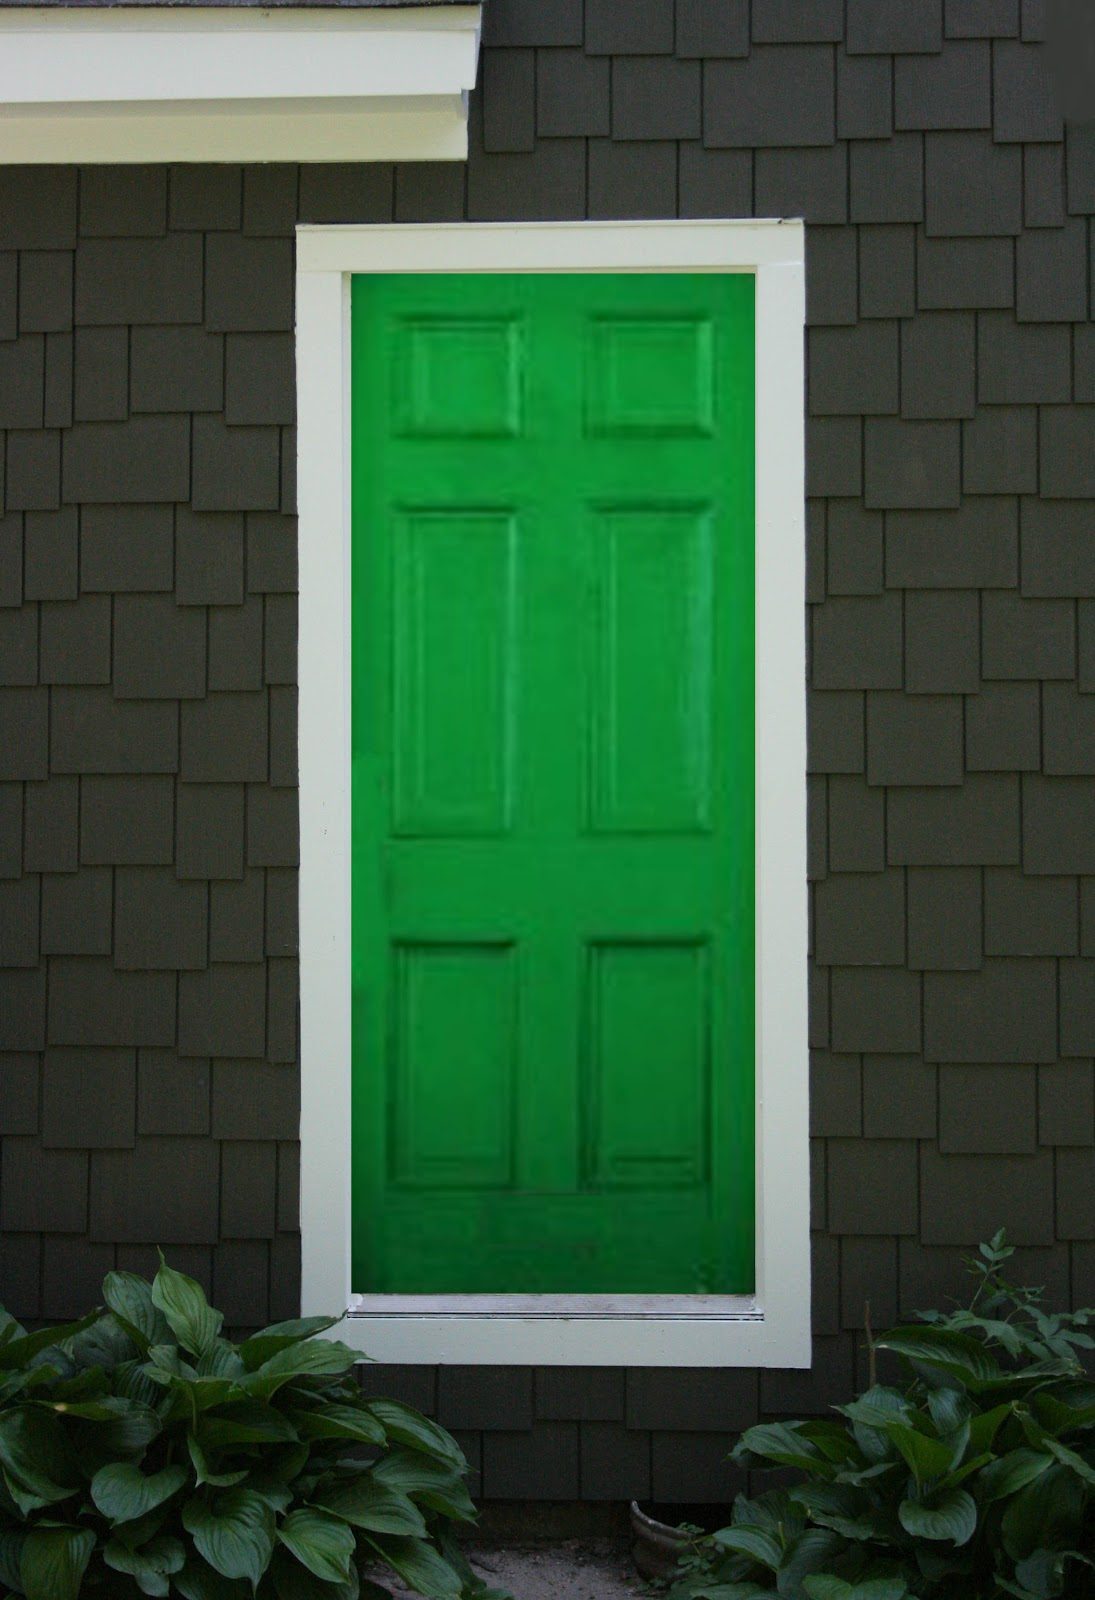 1600 #0D8130 Charming Doodle Sew It Build It!: Which Door Color? save image Green Front Doors 47971095